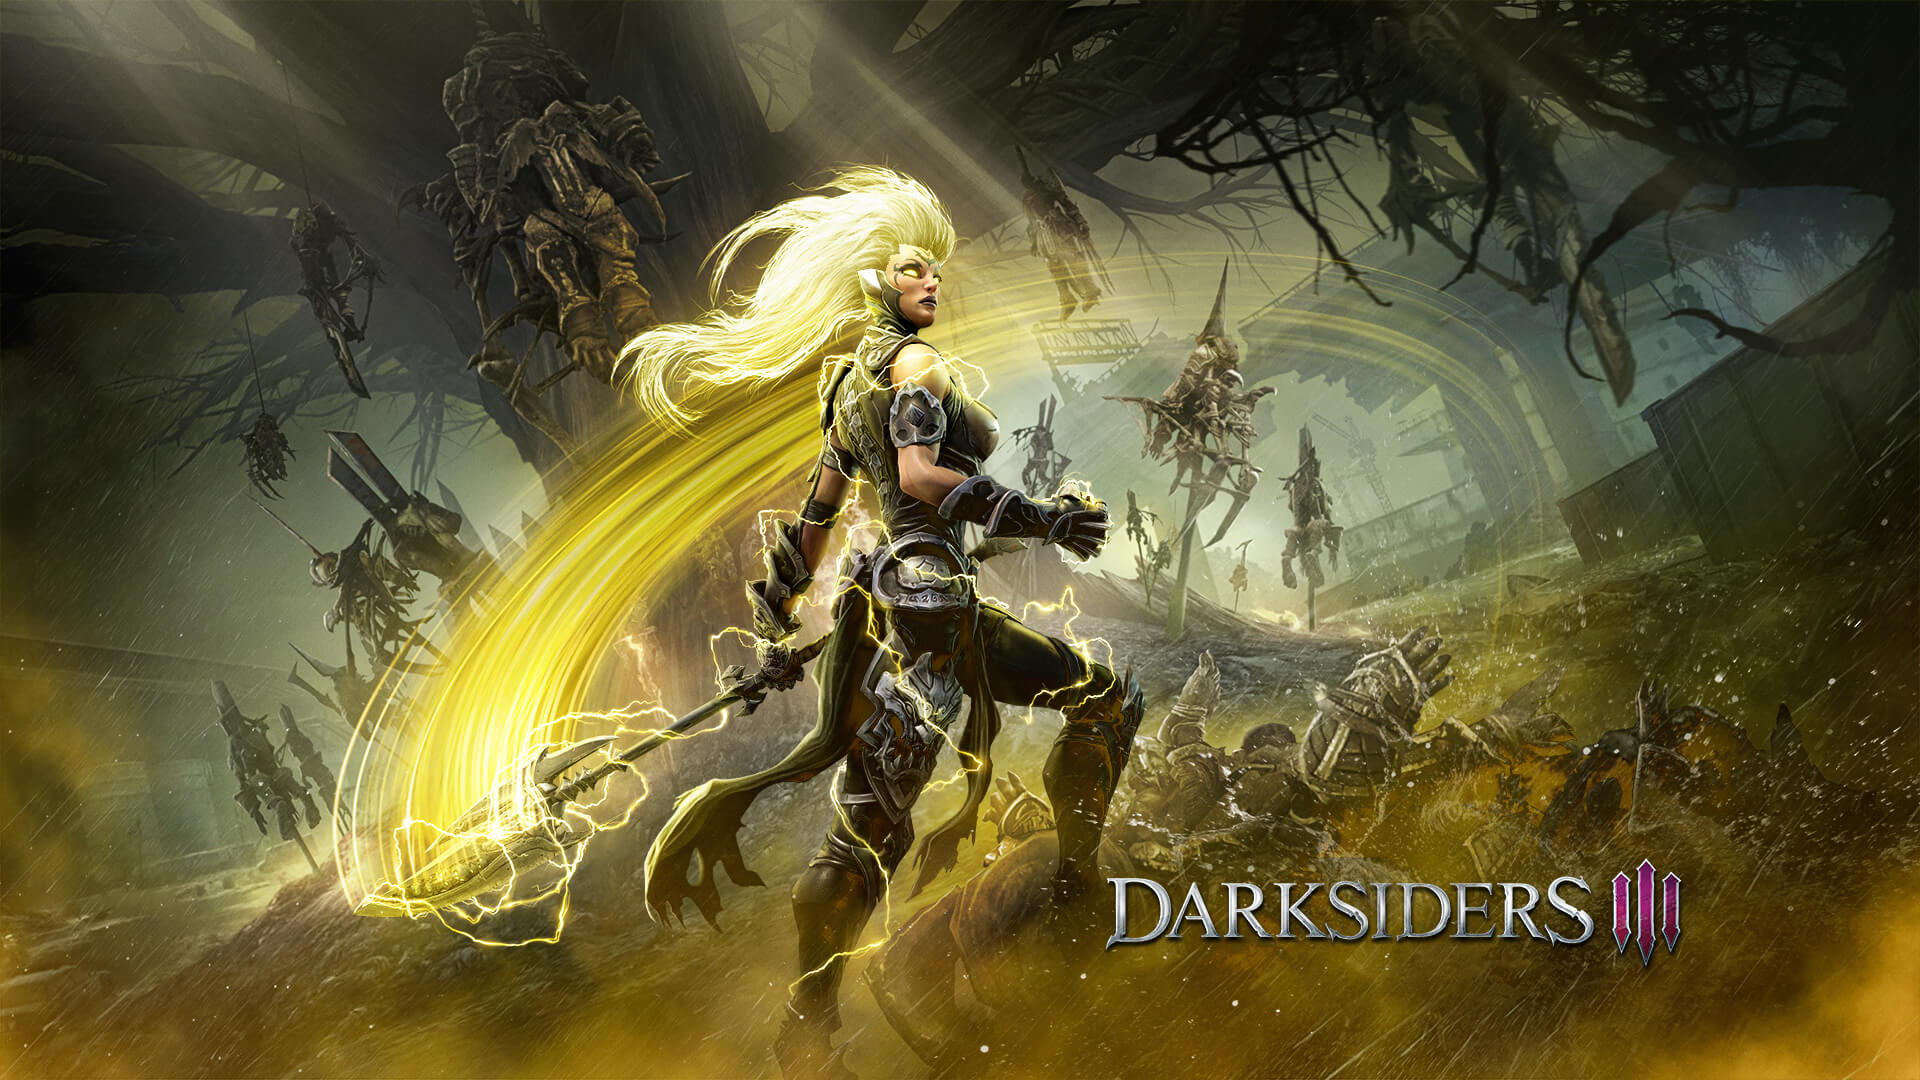 Darksiders III HD Wallpaper Background Image 1920x1080 ID 1920x1080